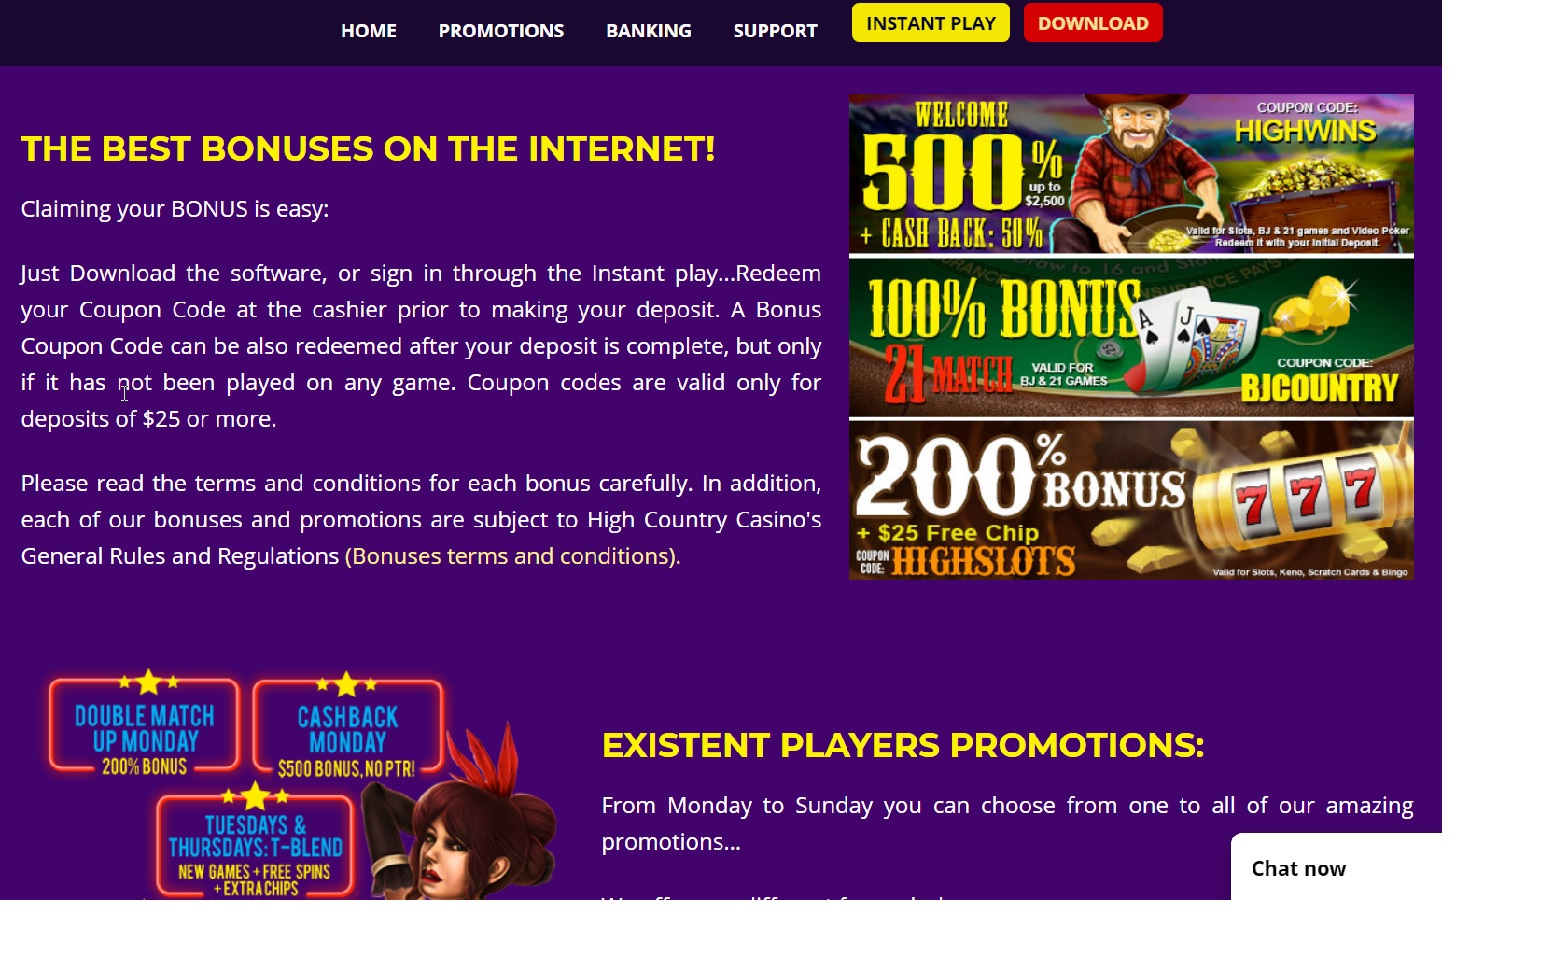 High_Promo_500%_Bonus_casino